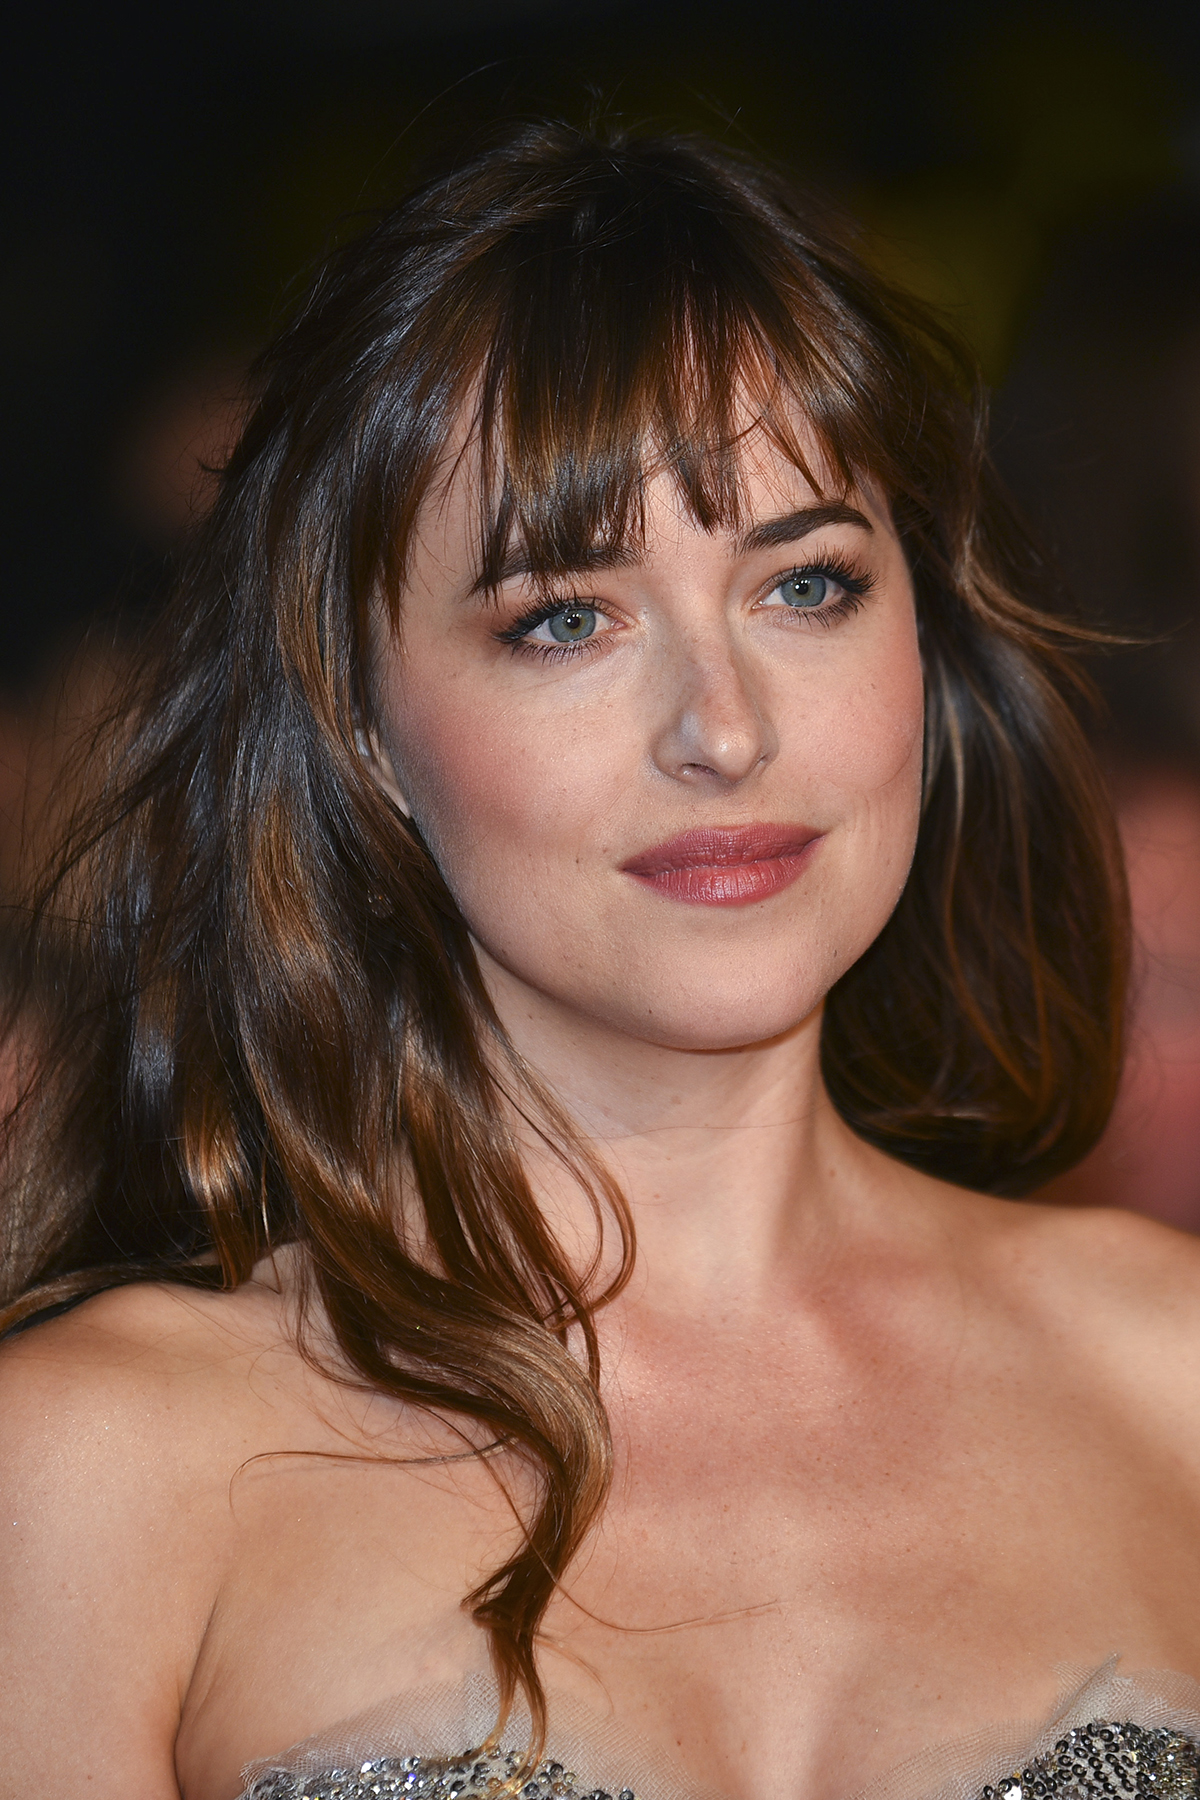 What's Going on With Dakota Johnson and Chris Martin?